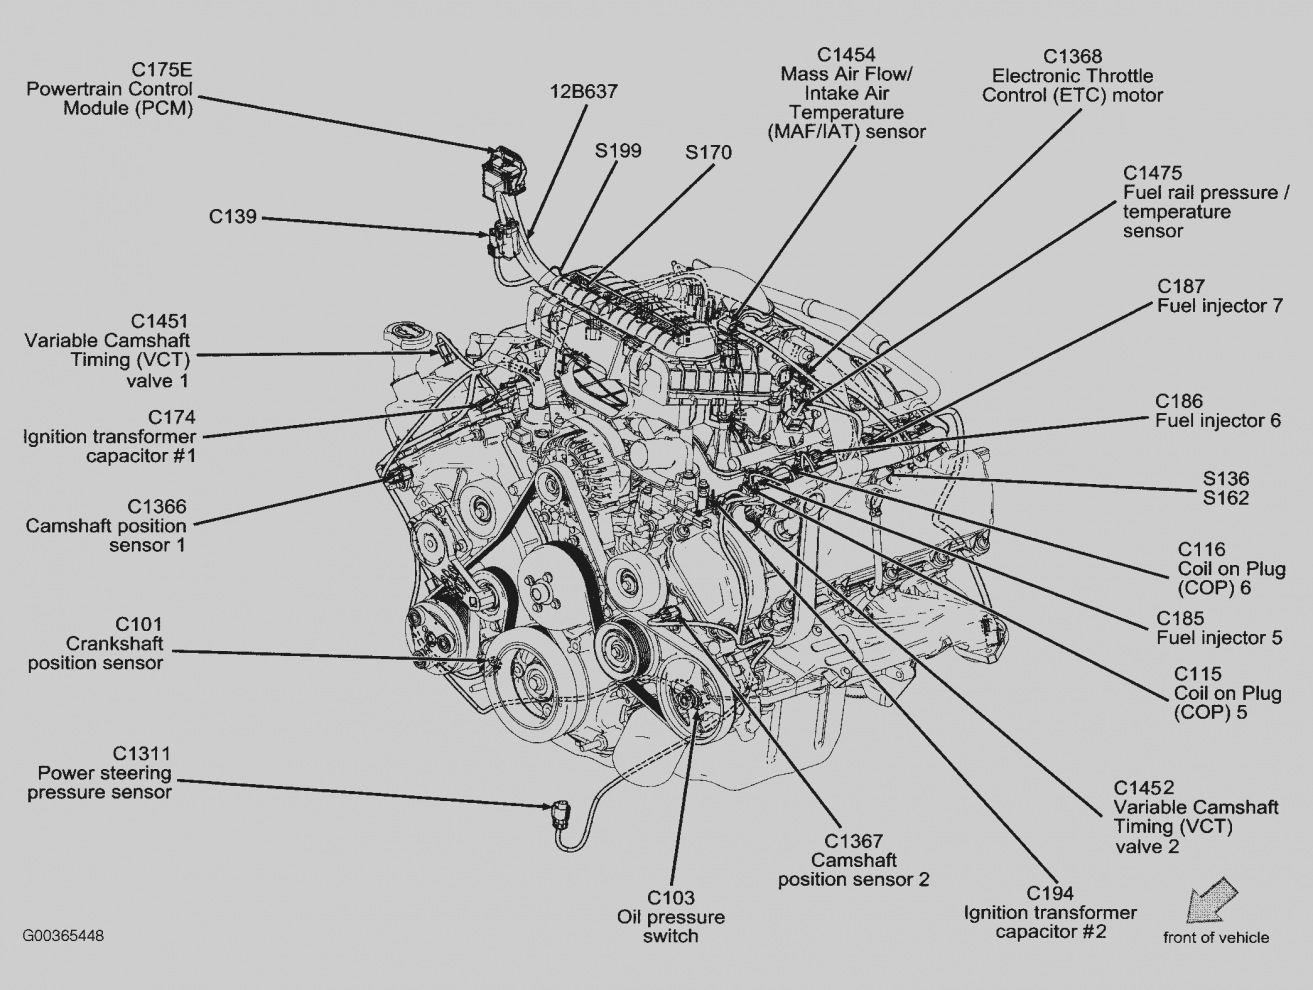 2000 ford expedition engine diagram diagram data schema 1997 ford expedition radiator diagram [ 1313 x 990 Pixel ]